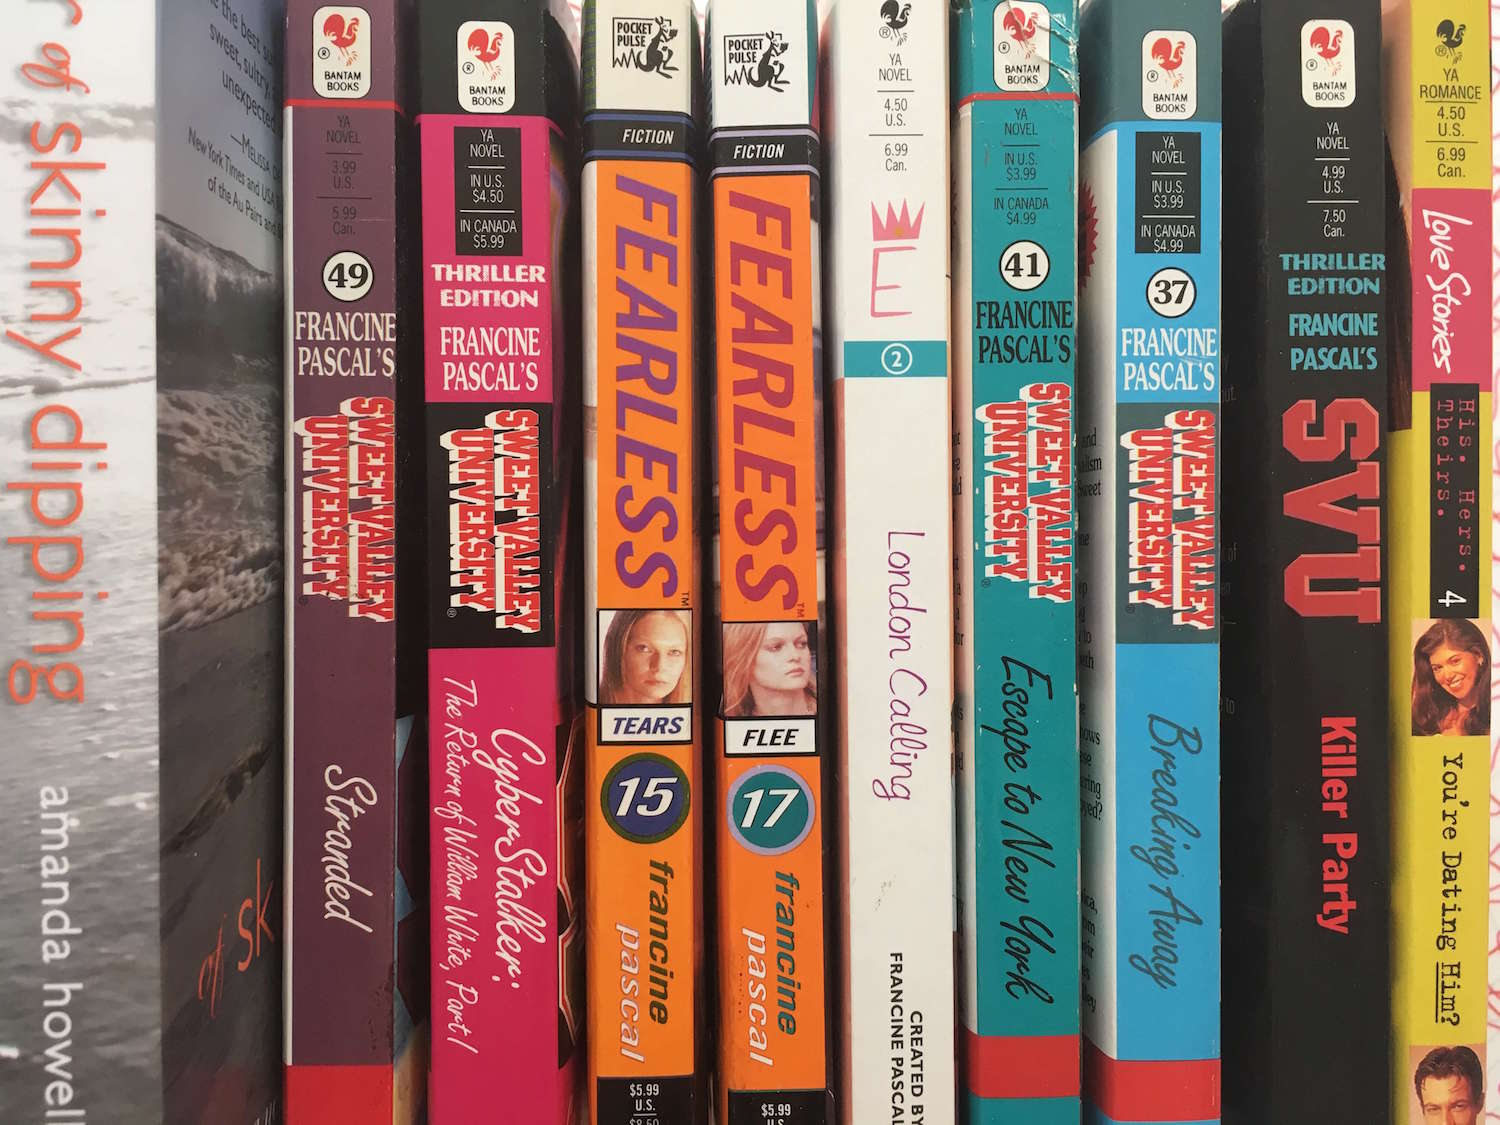 "PULP - I have cranked out more than a dozen books for Francine Pascal and other writers, some of whom must remain top-secret! My favorite Sweet Valley assignment involved Elizabeth Wakefield impersonating a scullery maid in an English castle. I also got a kick out of  the Fearless series, about Gaia, ""the girl born without the fear gene."""